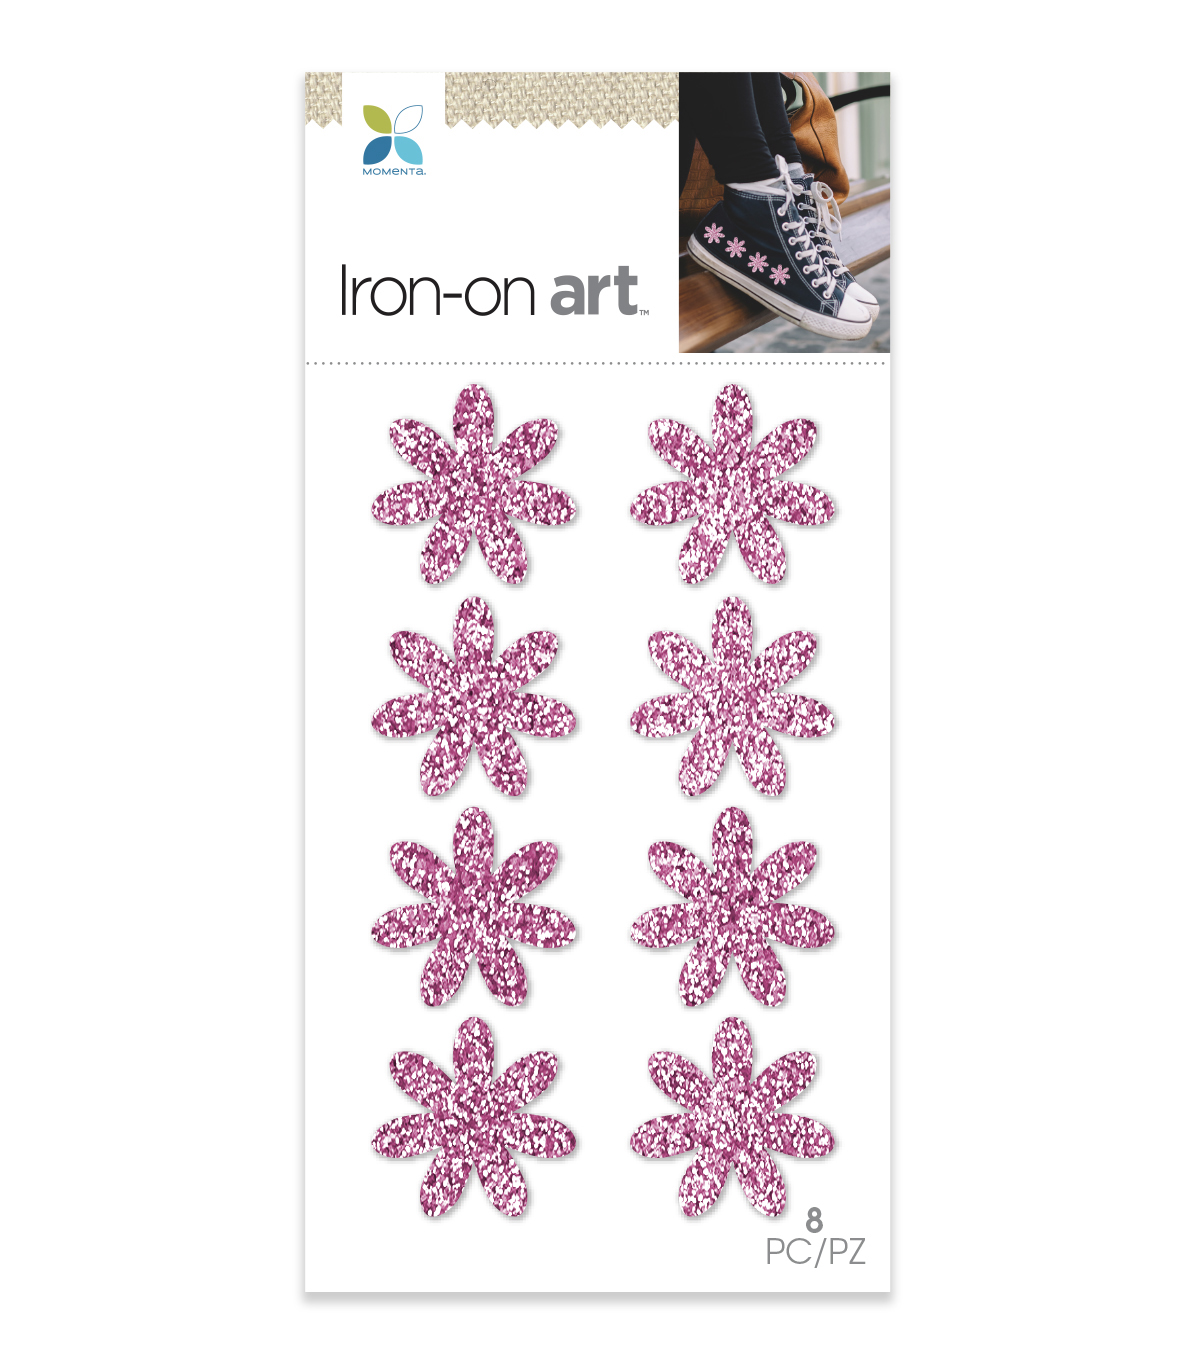 Momenta 8 pk Mini Flowers Chunky Glitter Iron-on Art-Pink